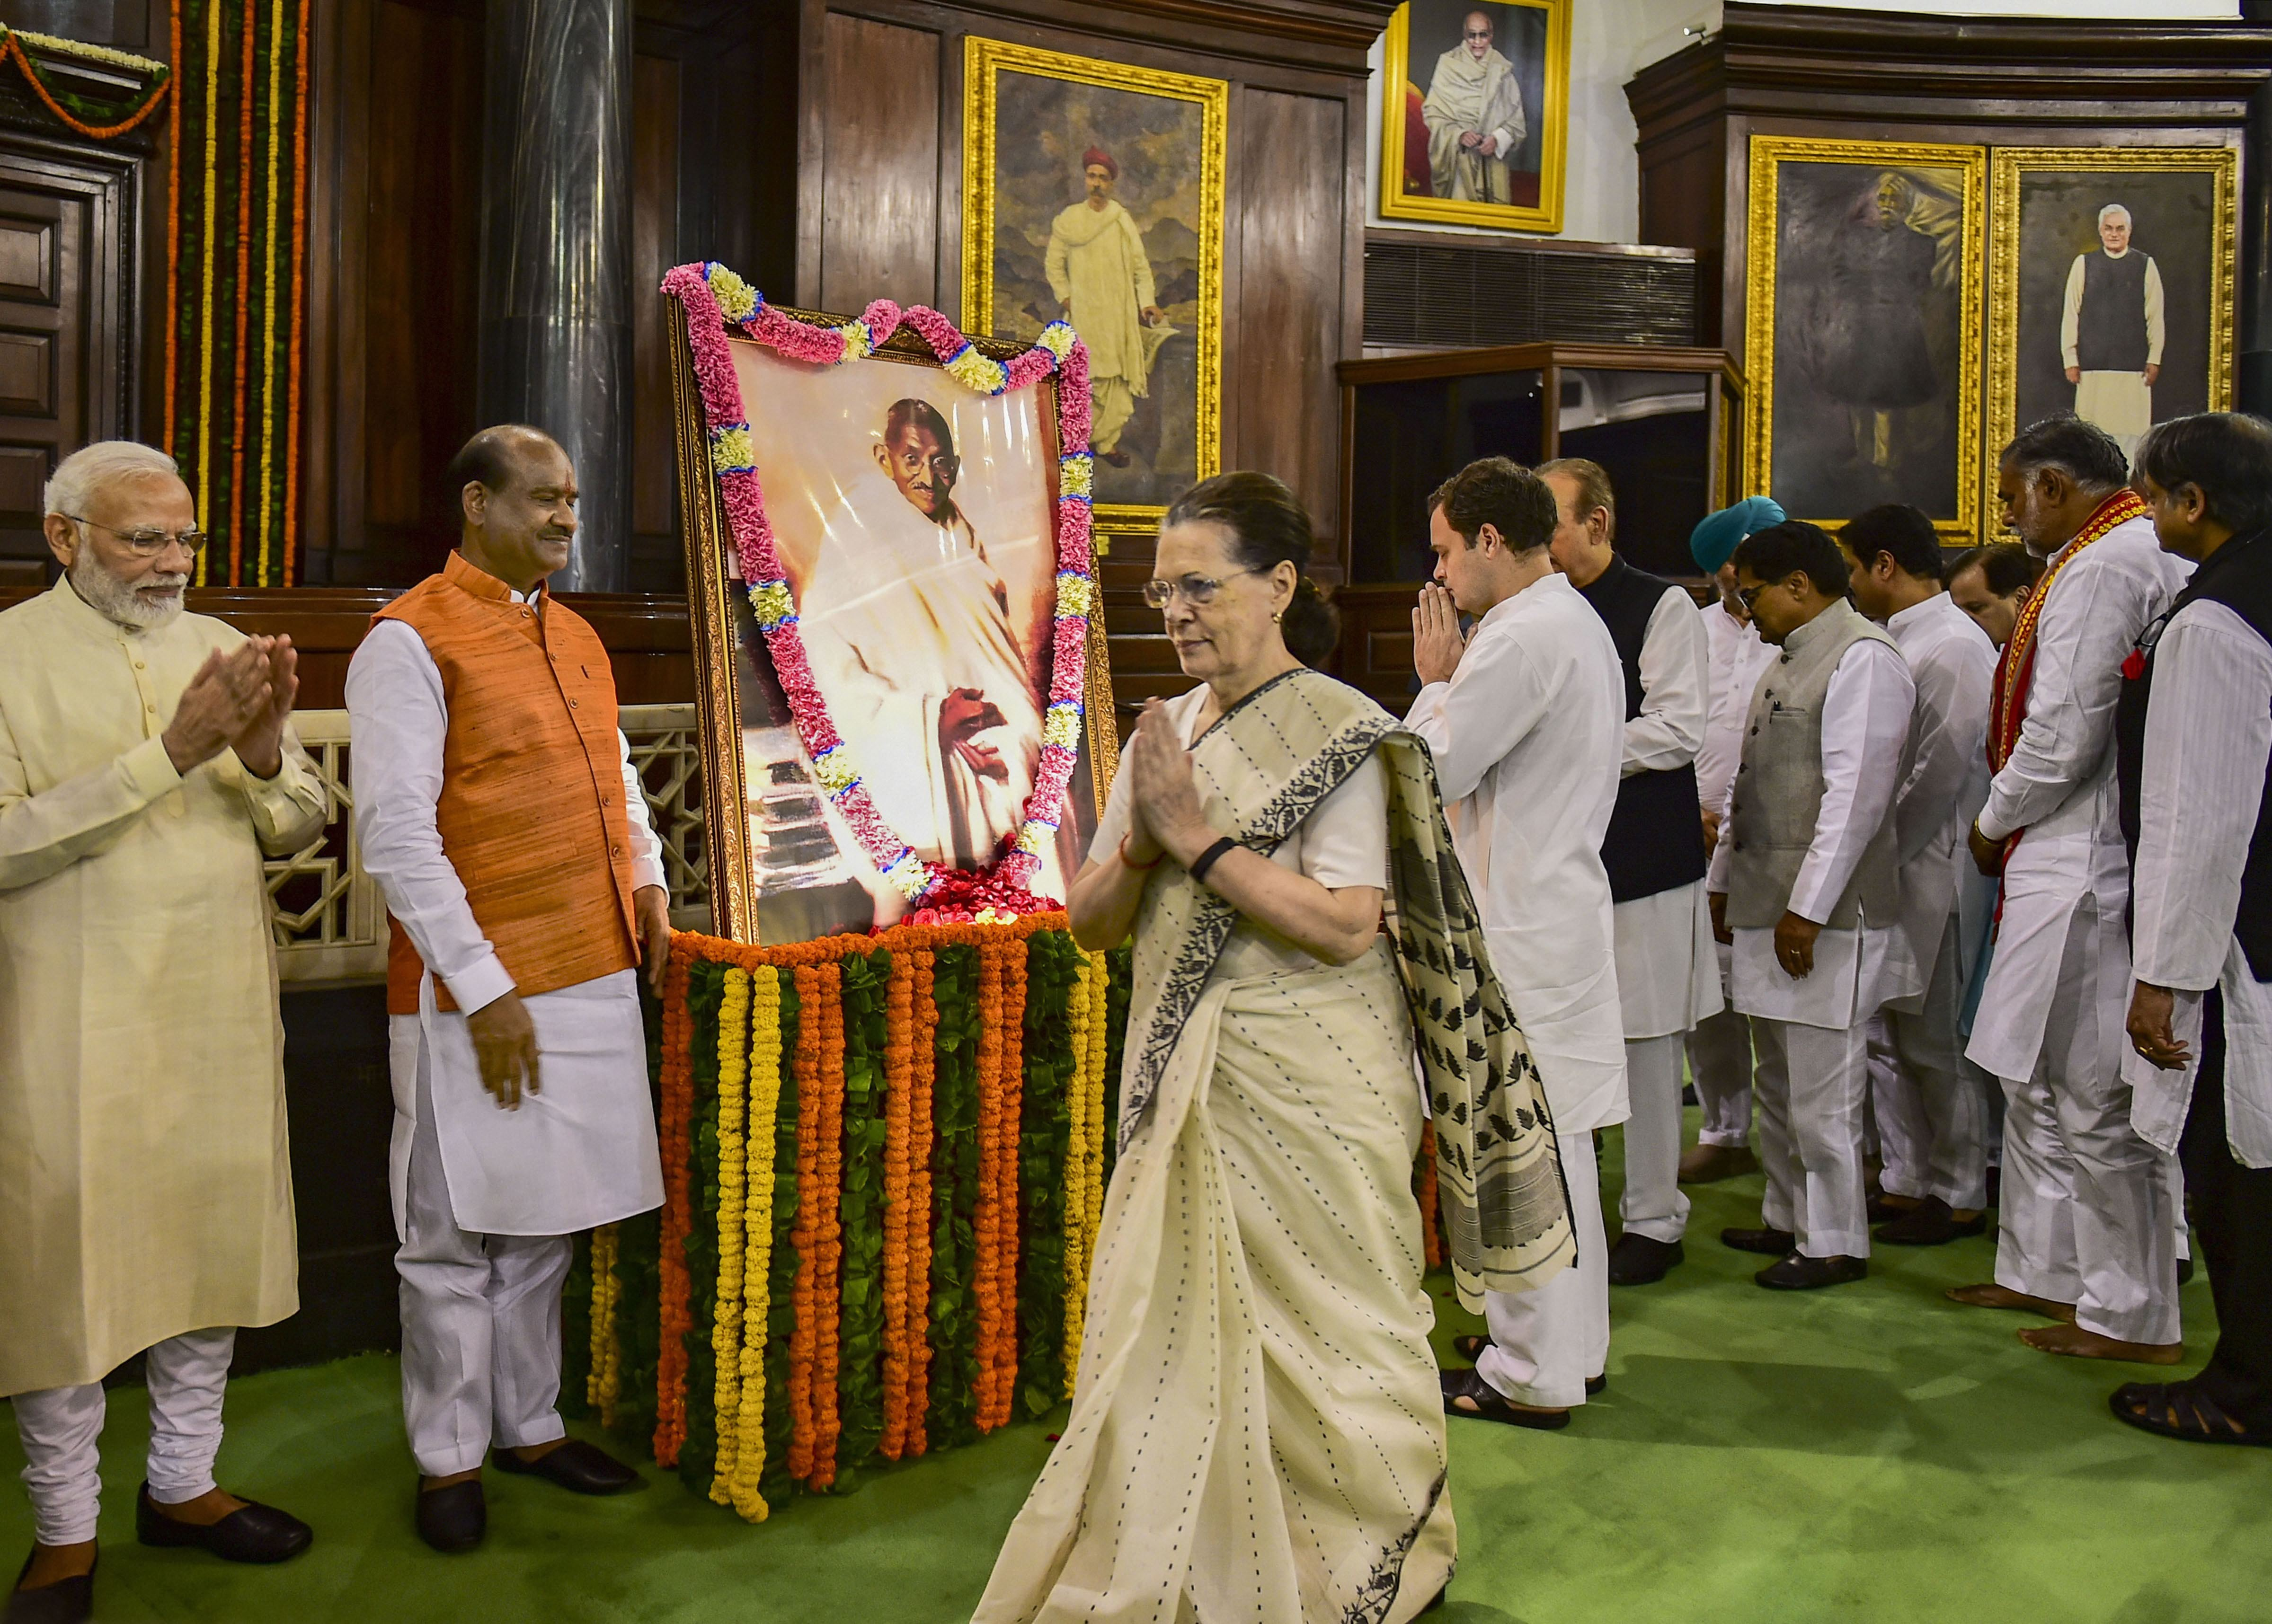 Those who indulge in politics of falsehood will not understand Mahatma Gandhi: Sonia